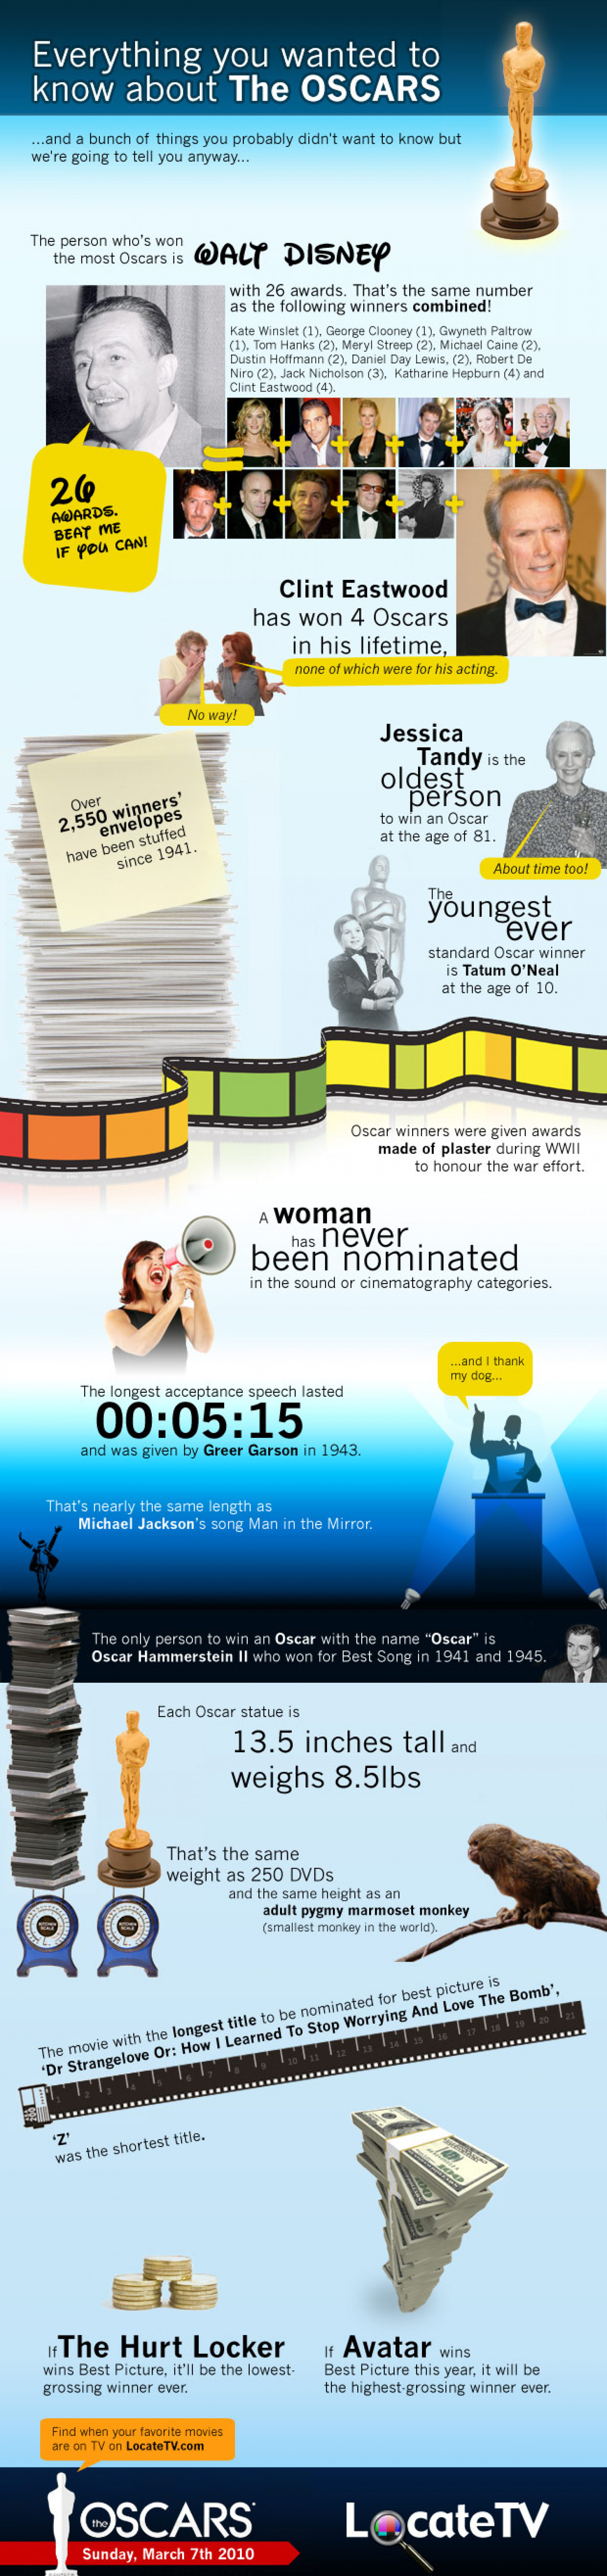 Everything You Wanted to Know About The Oscars  Infographic